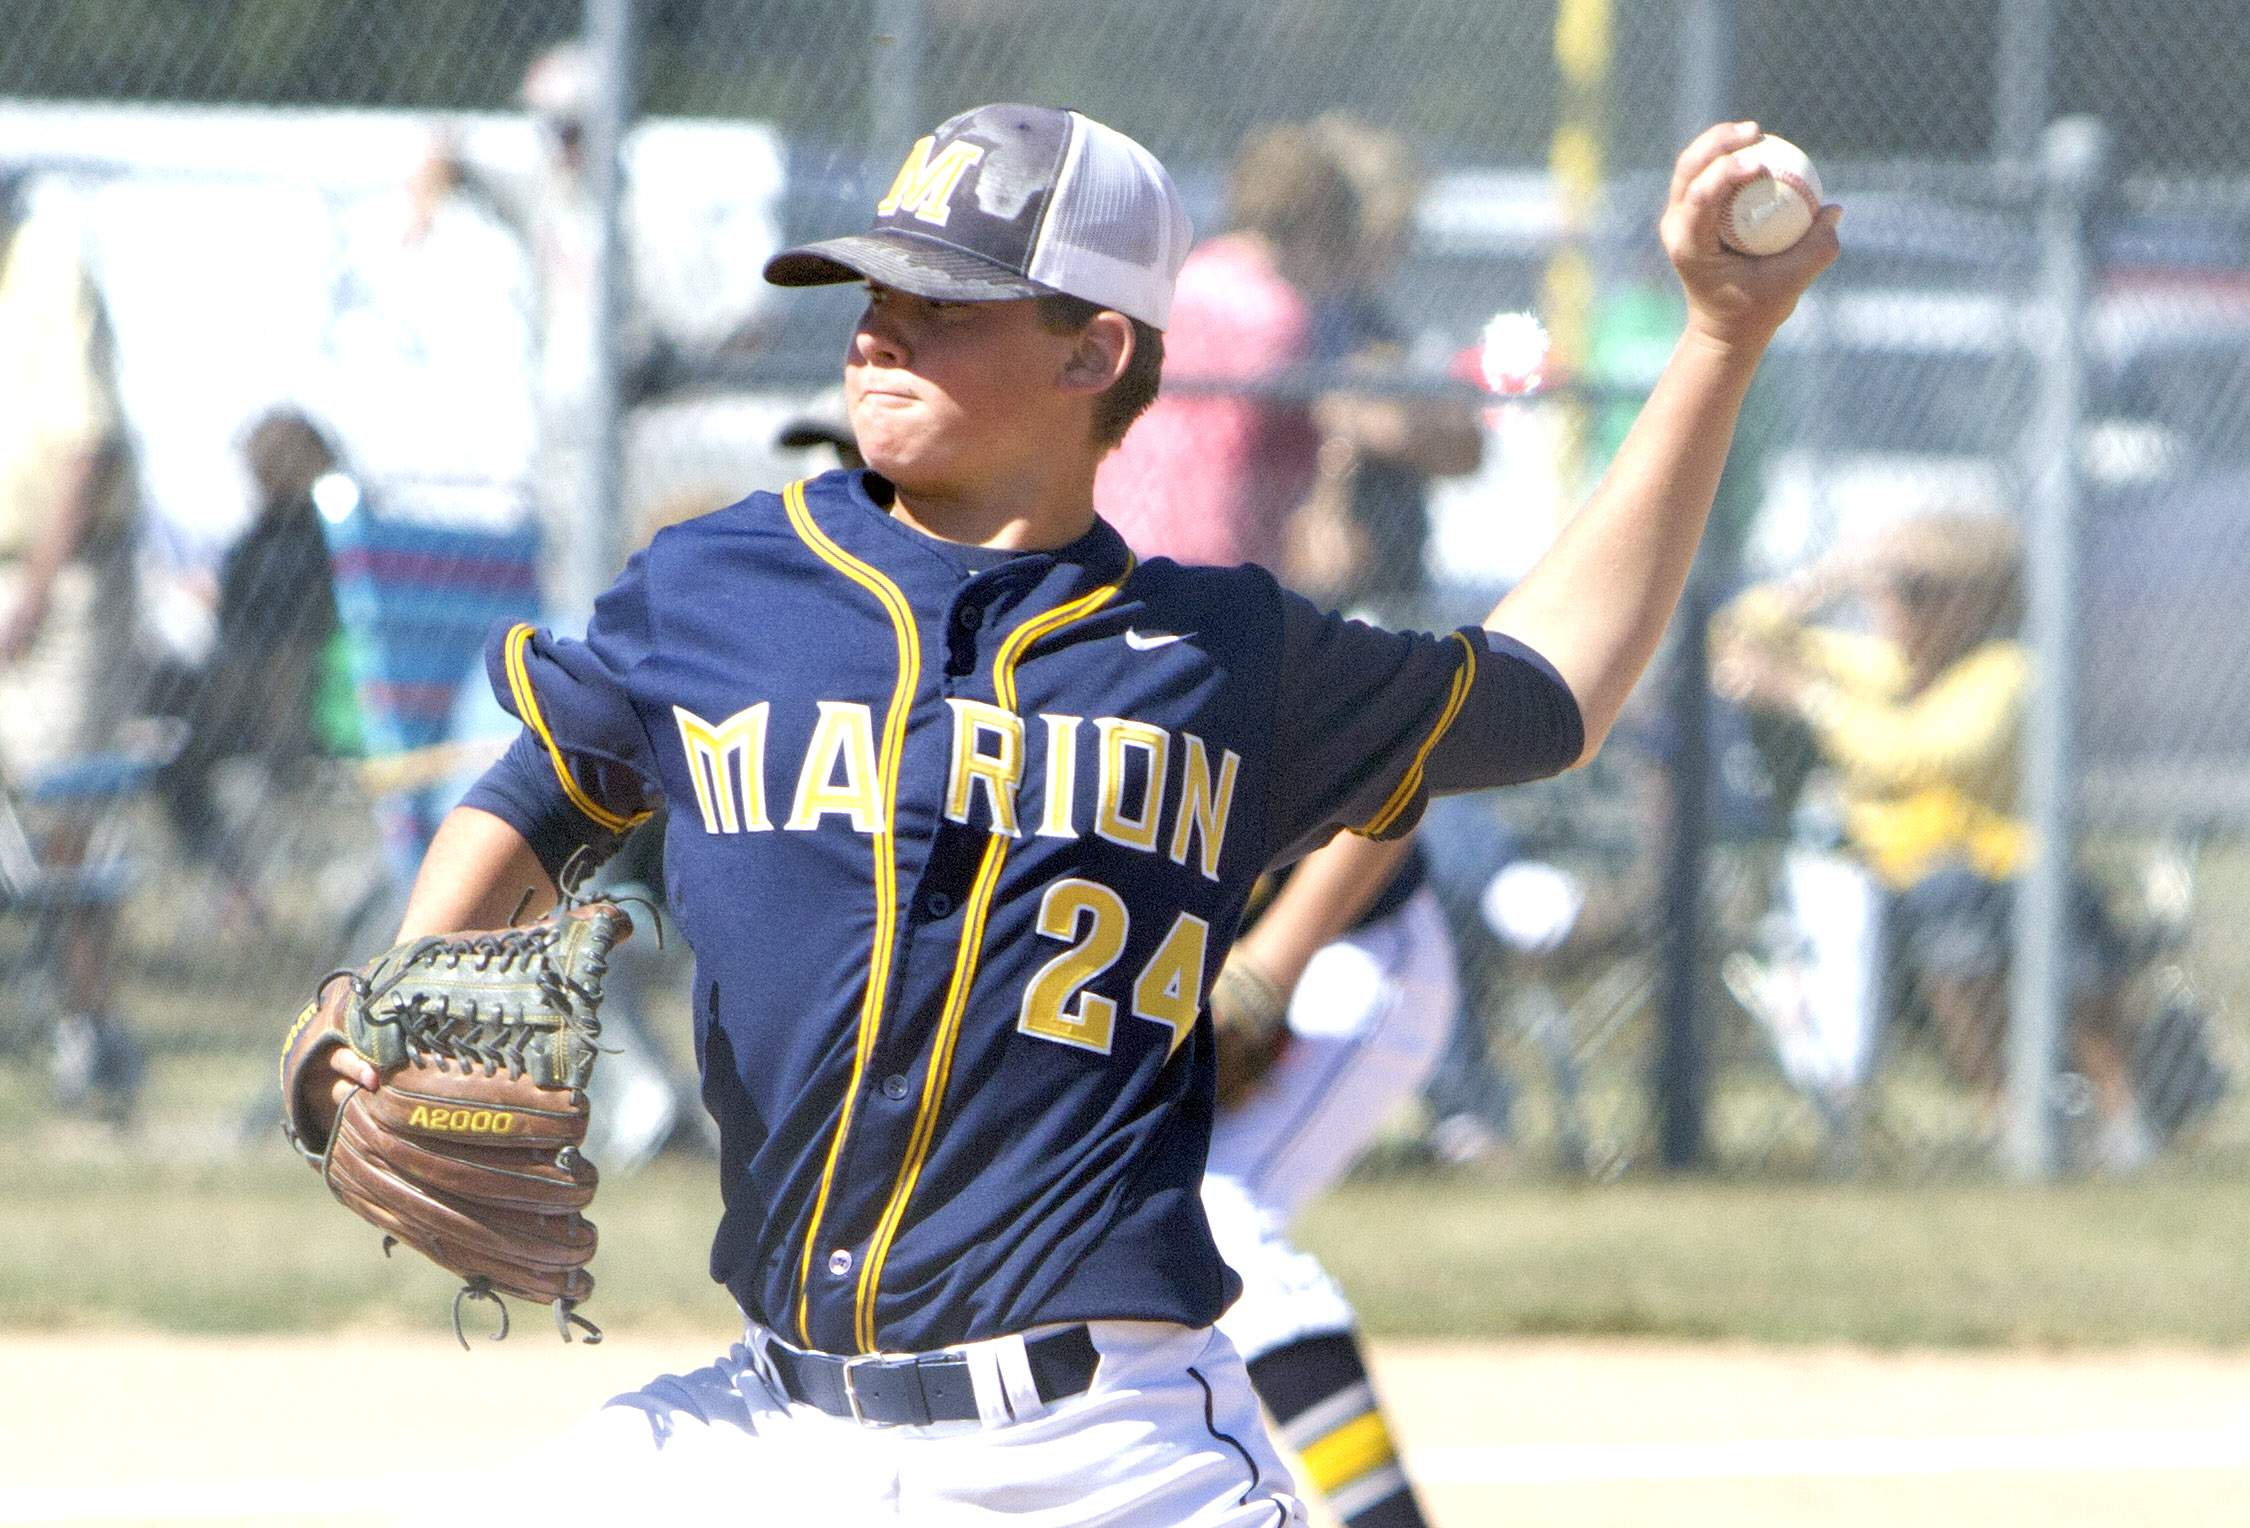 Karsten Stotlar throws a pitch in Saturday's game.